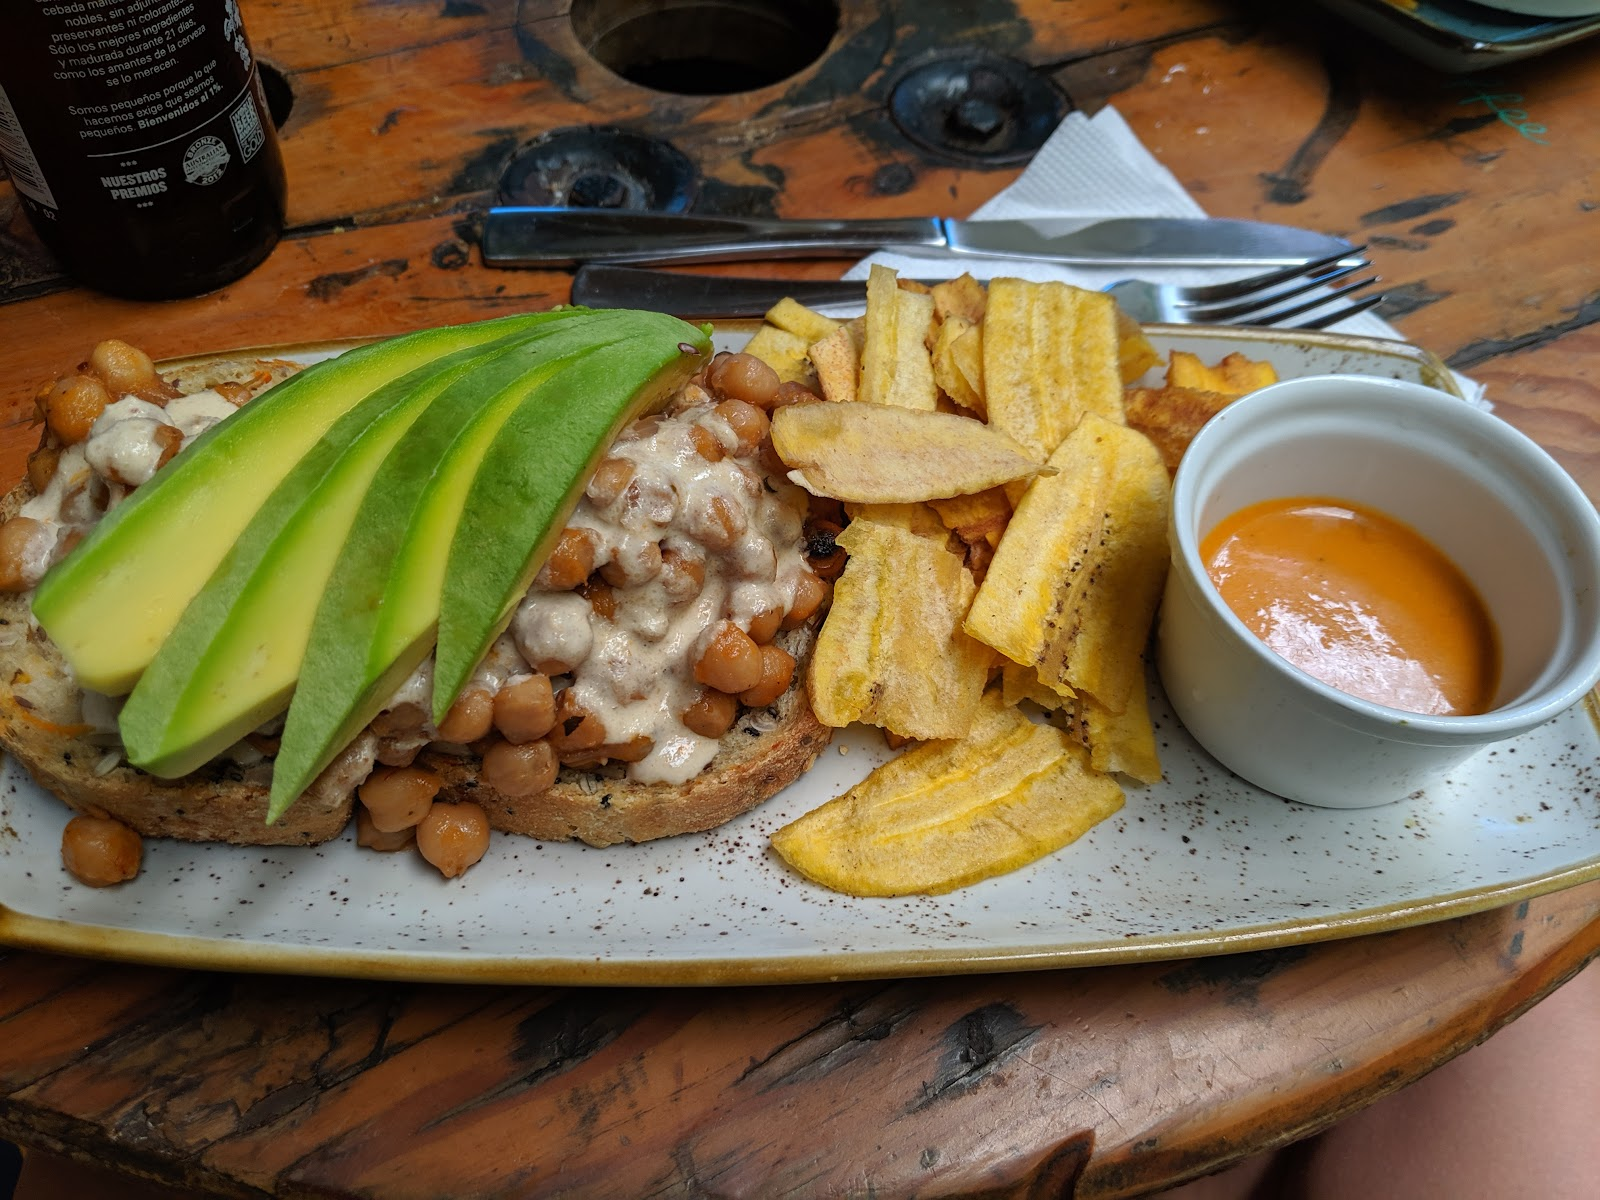 Chickpea entree at Ikaro Café in Santa Marta, Colombia